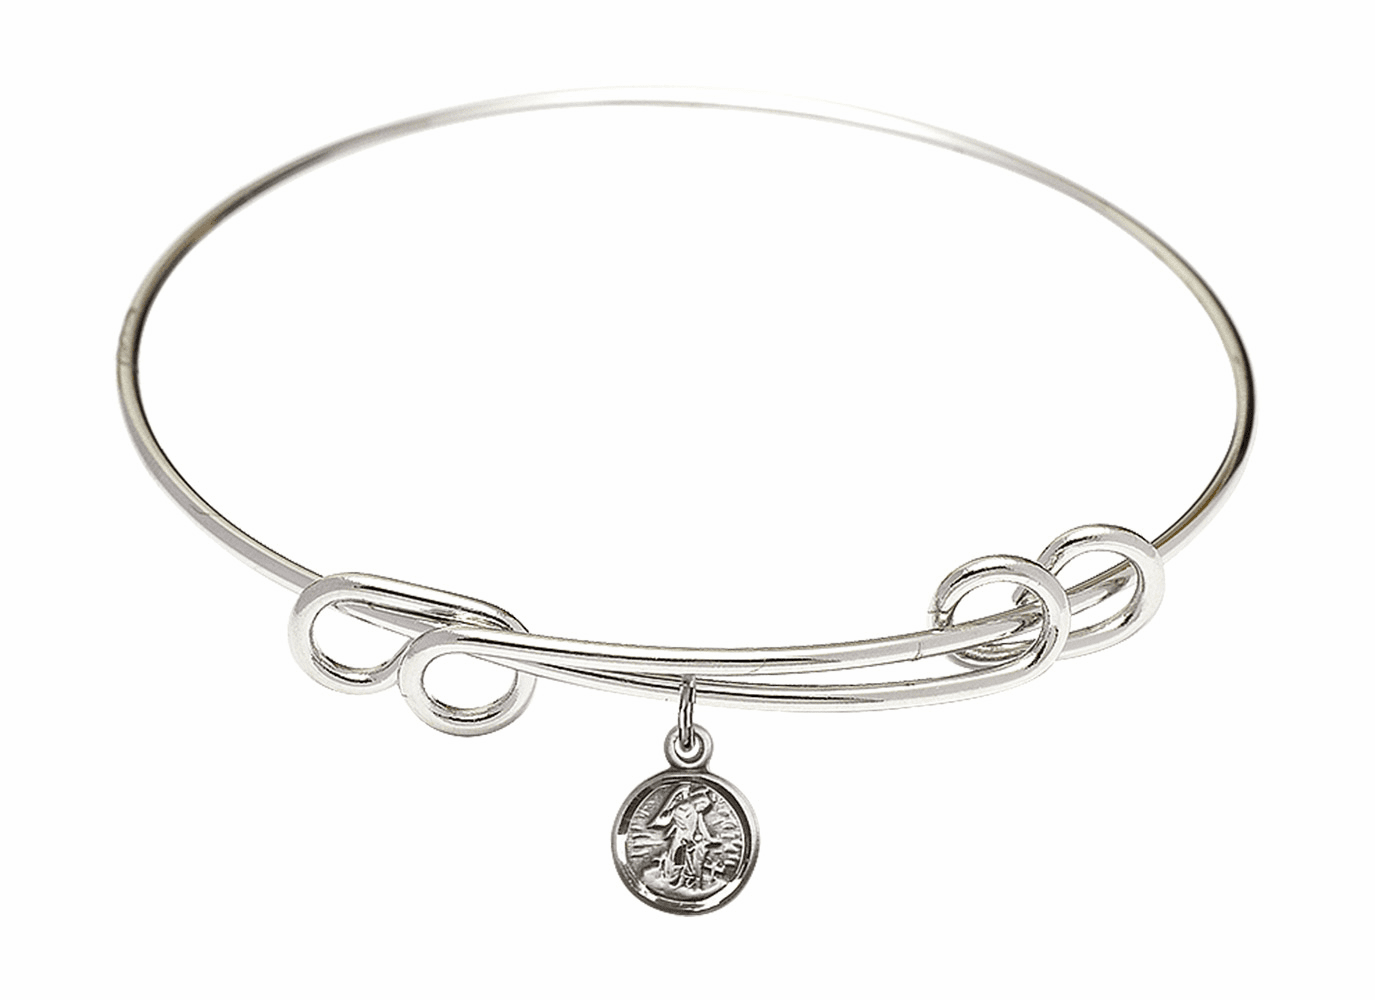 Round Double Loop Bangle Bracelet w/Small Guardian Angel Sterling Silver Charm by Bliss Mfg